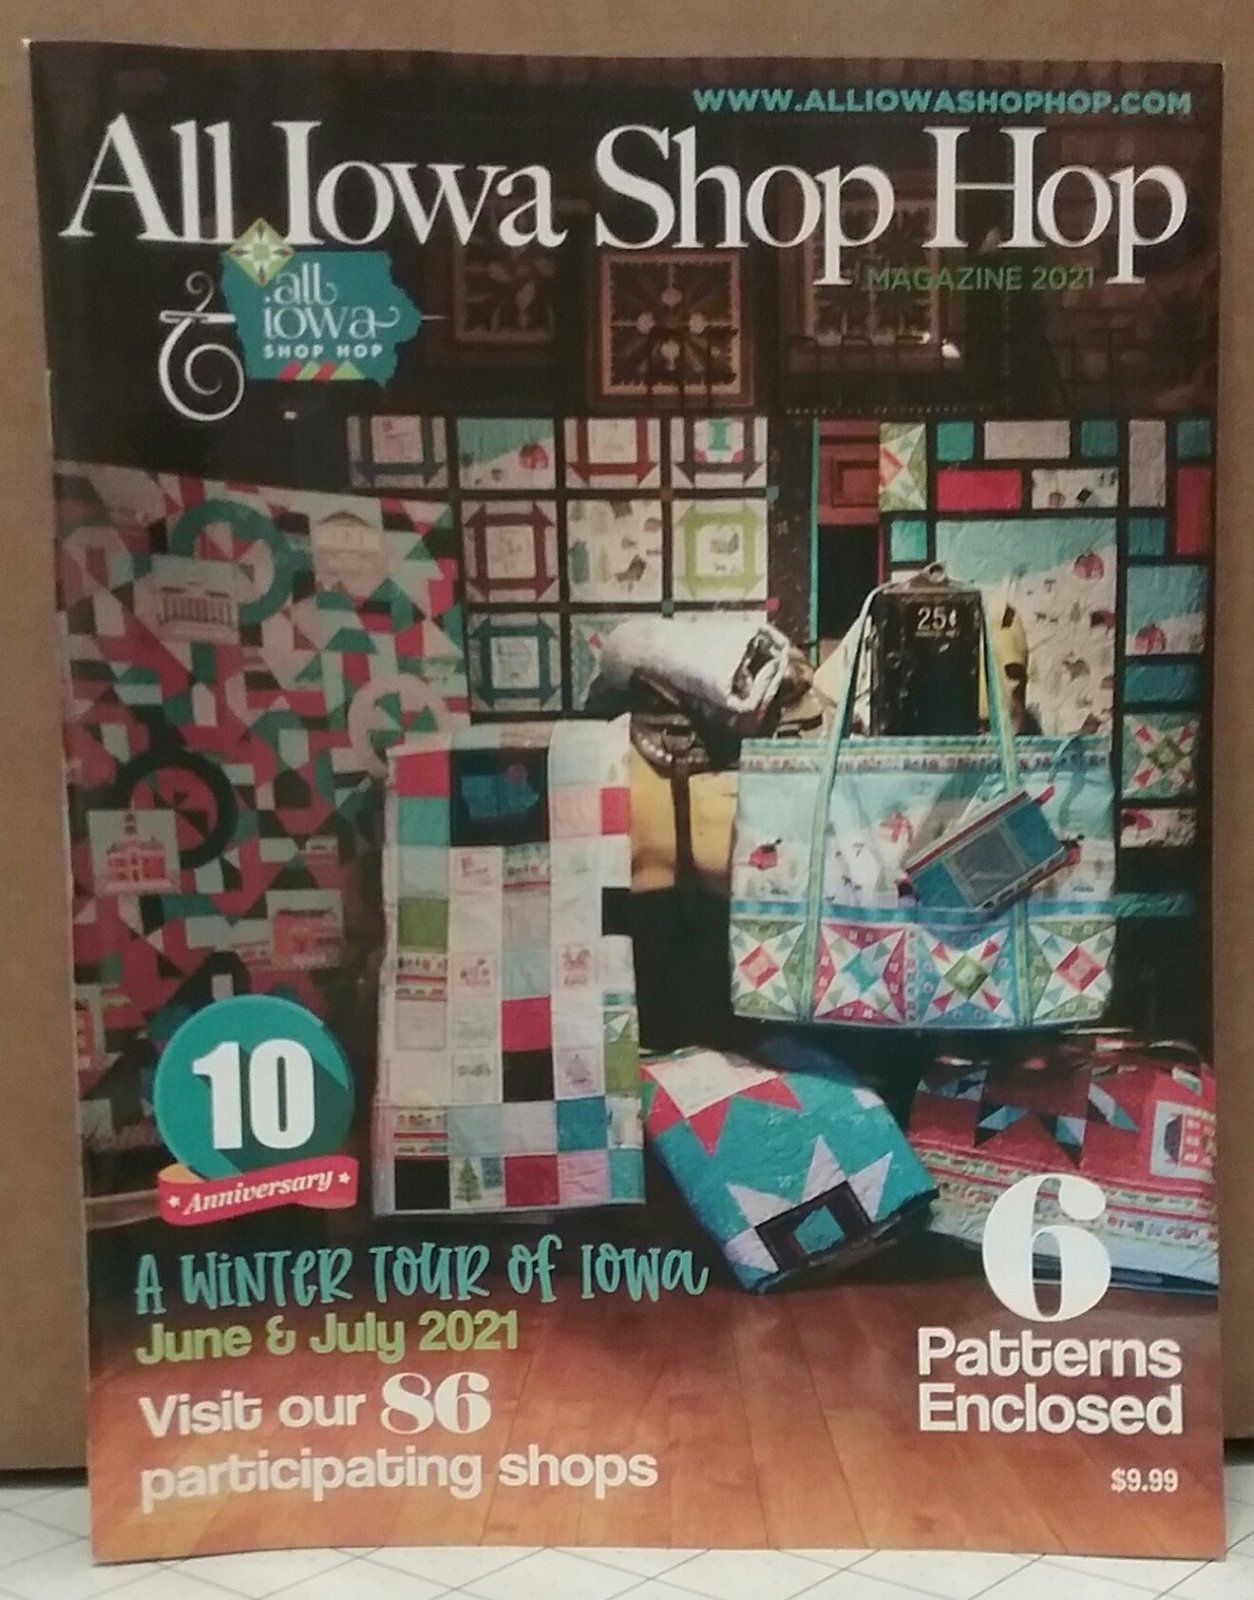 All Iowa Shop Hop Magazine 2021